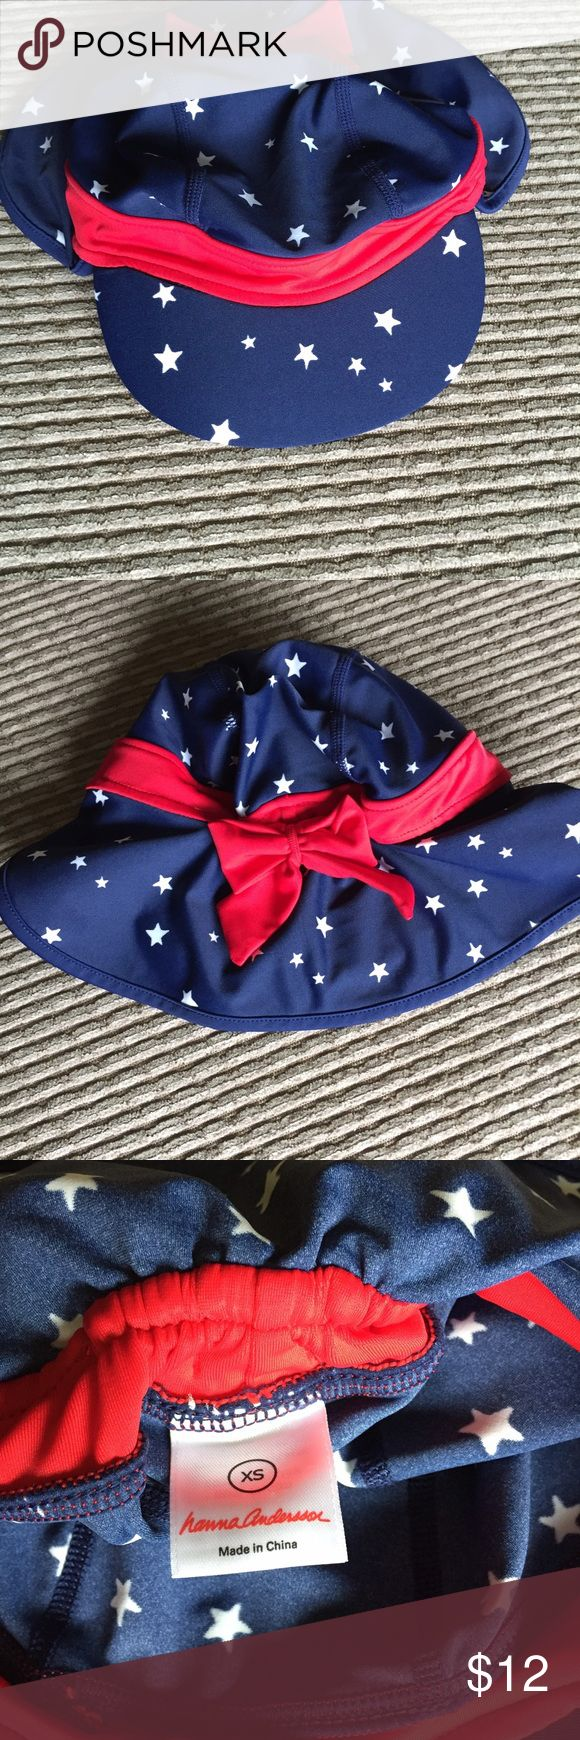 Hanna Andersson baby sun hat Blue hat with white stars and red band with bow in the back. Long back to cover baby's neck for better sun protection. Like new condition Hanna Andersson Accessories Hats